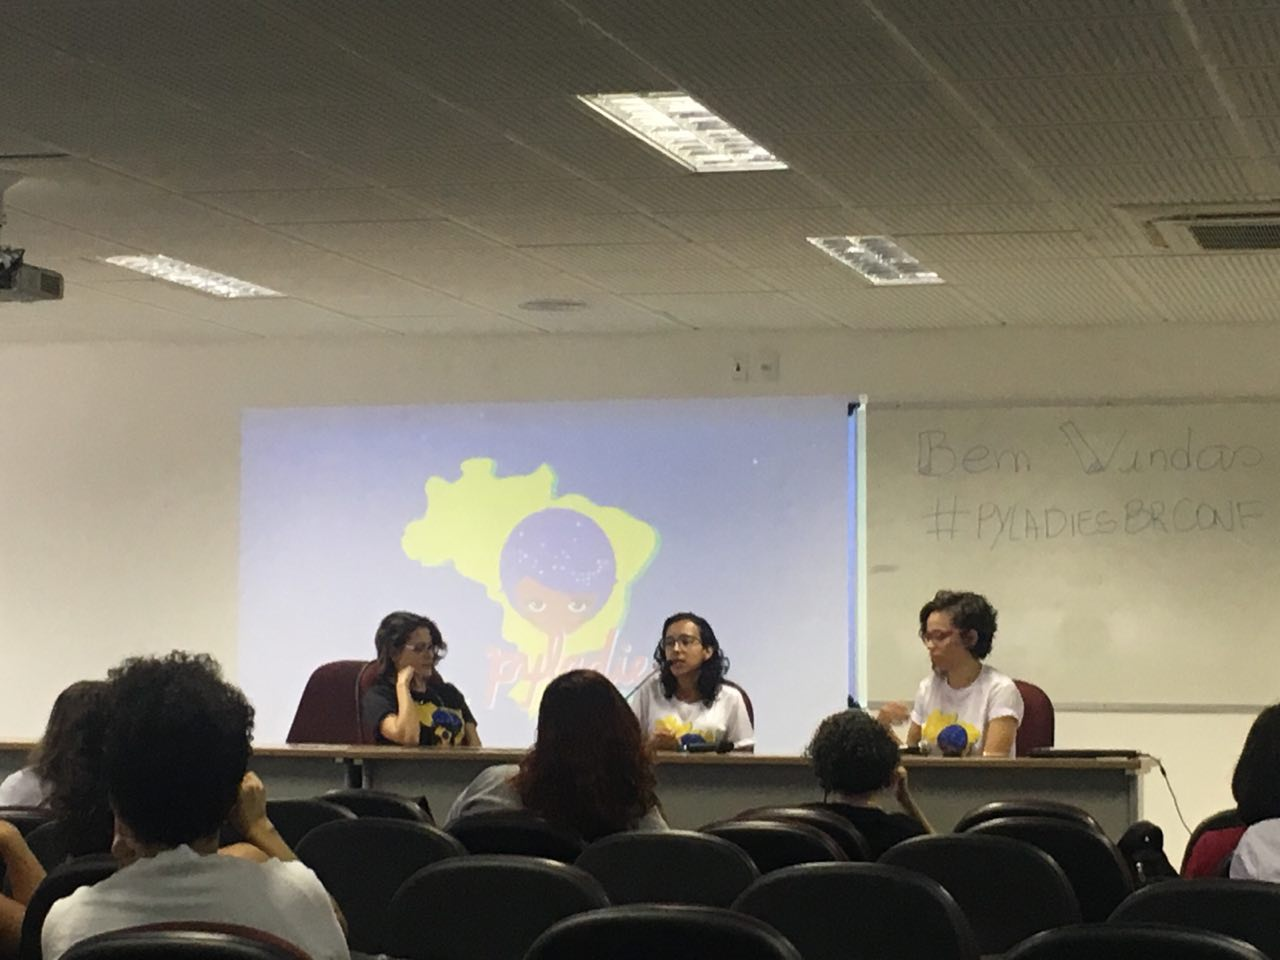 picture of PyLadiesBRConf. Three women sitting in front of a table, on stage, speaking